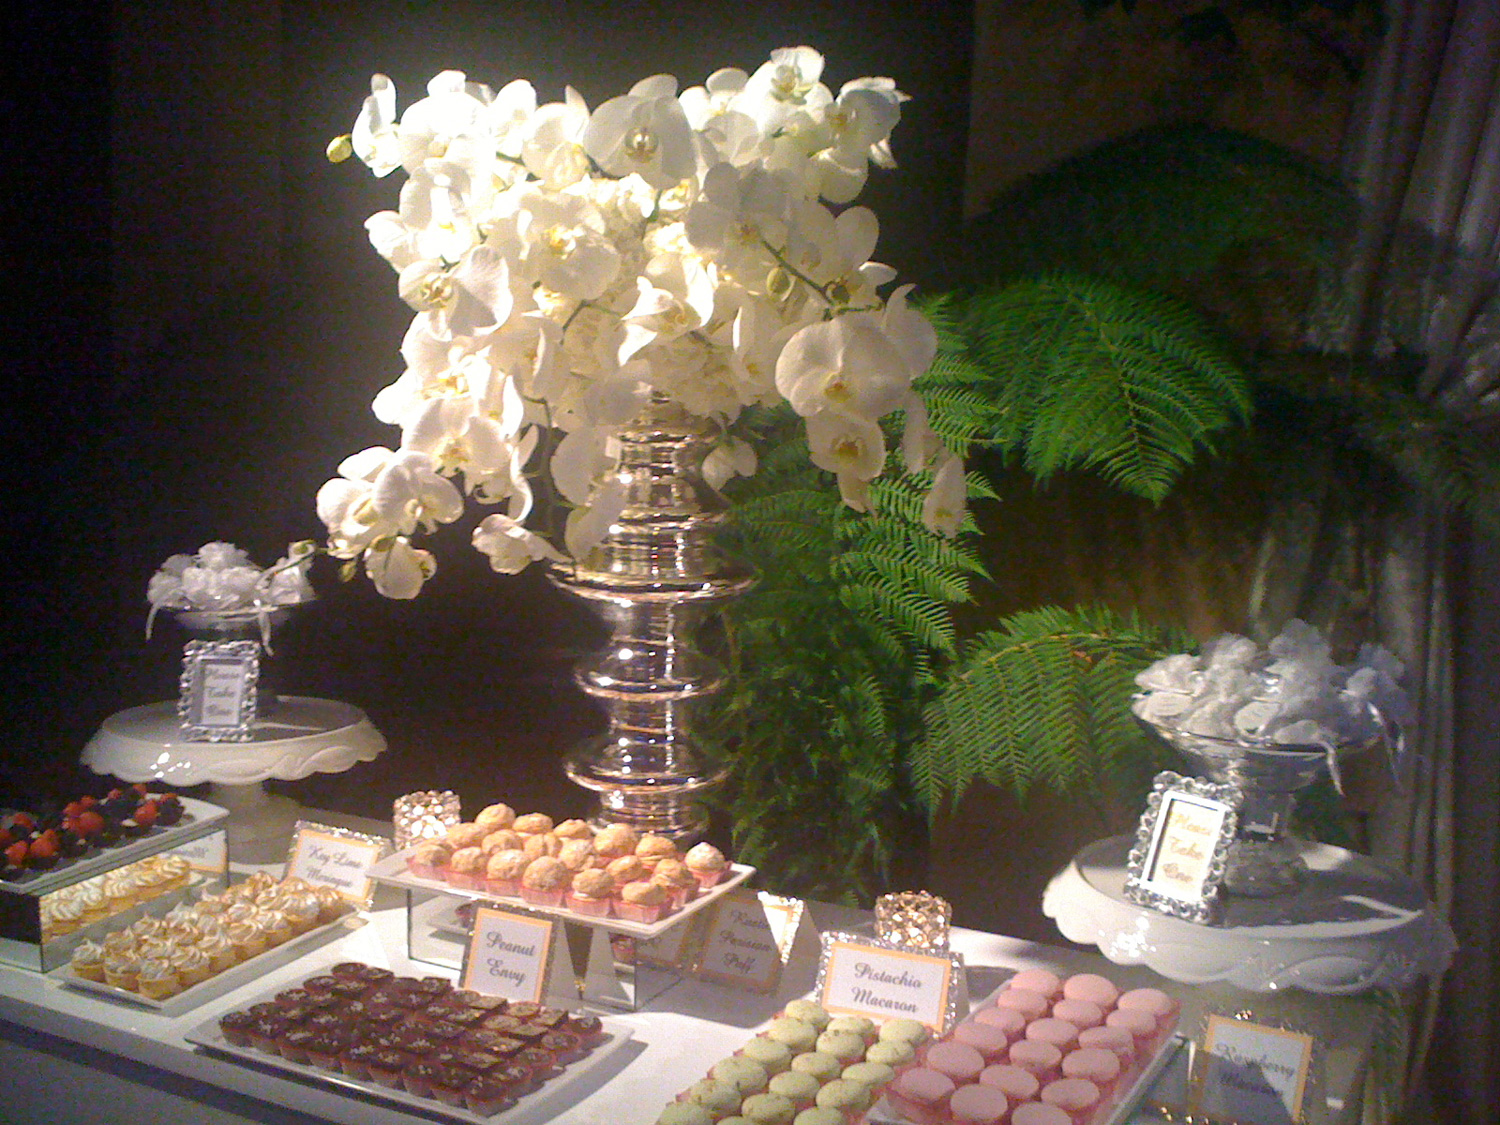 patisserie_angelica_dessert_display_9.jpg